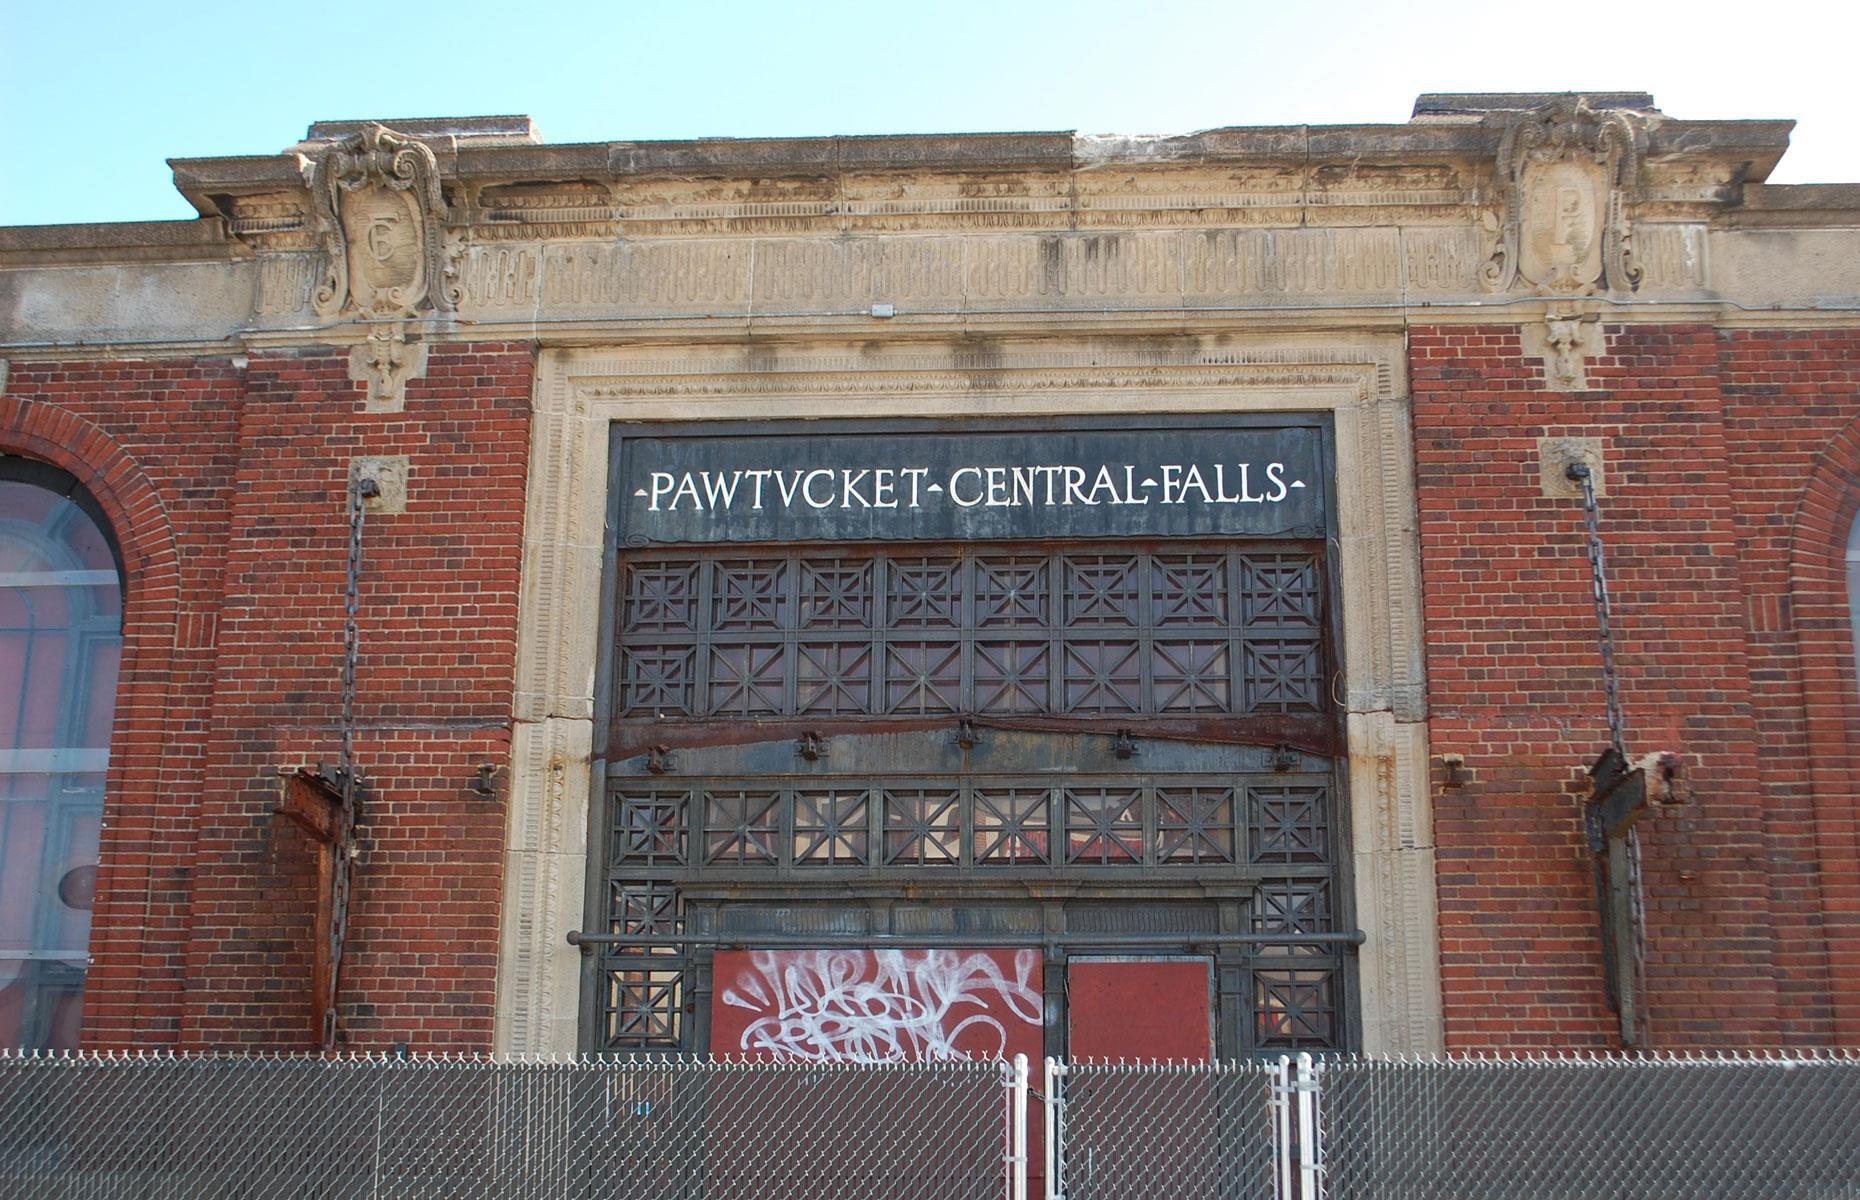 Slide 78 of 101: Pawtucket-Central Falls is a grand abandoned railroad station opened in 1916. After more than four decades of service, the Beaux-Arts station building was closed in 1959. Passengers could still access the platforms until the 1980s, when the last train served the station.